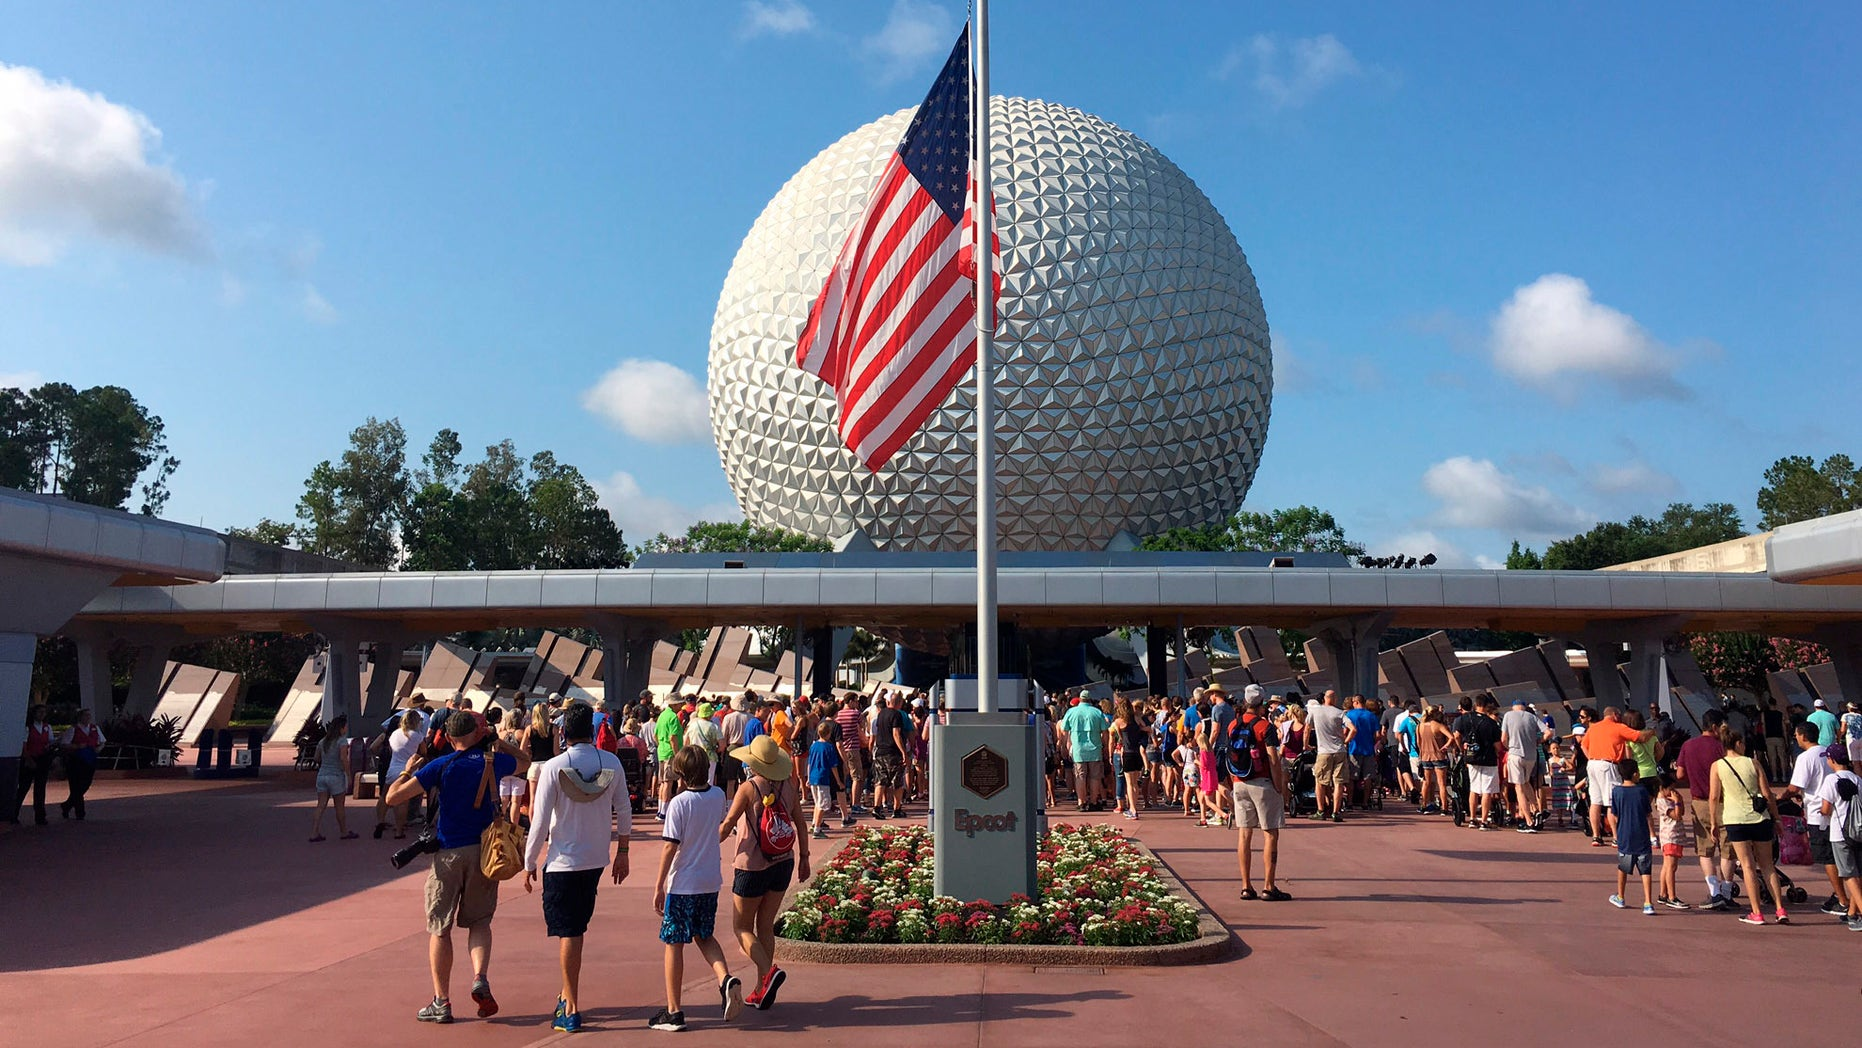 """The stolen items had belonged to Buzzy, who was part of the now-closed """"Wonders of Life"""" attraction at Epcot."""